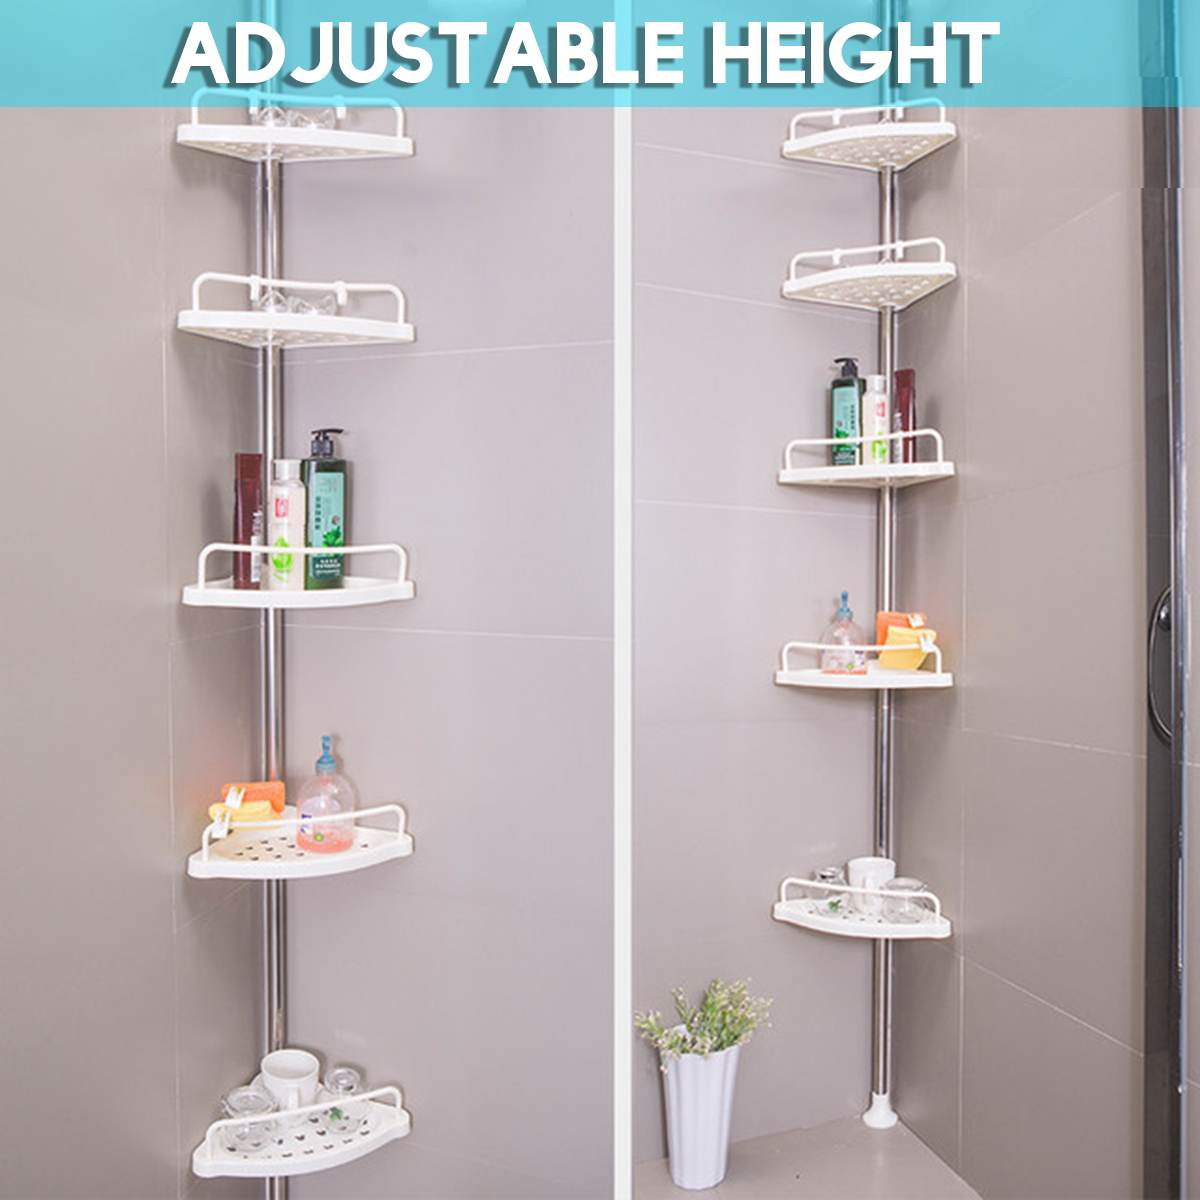 5 Tier Telescopic Bathroom Corner Shelf Rack+Stainless Steel Bar Shower Caddy Storage Bathroom Shelf Space Saving Bath Accessory